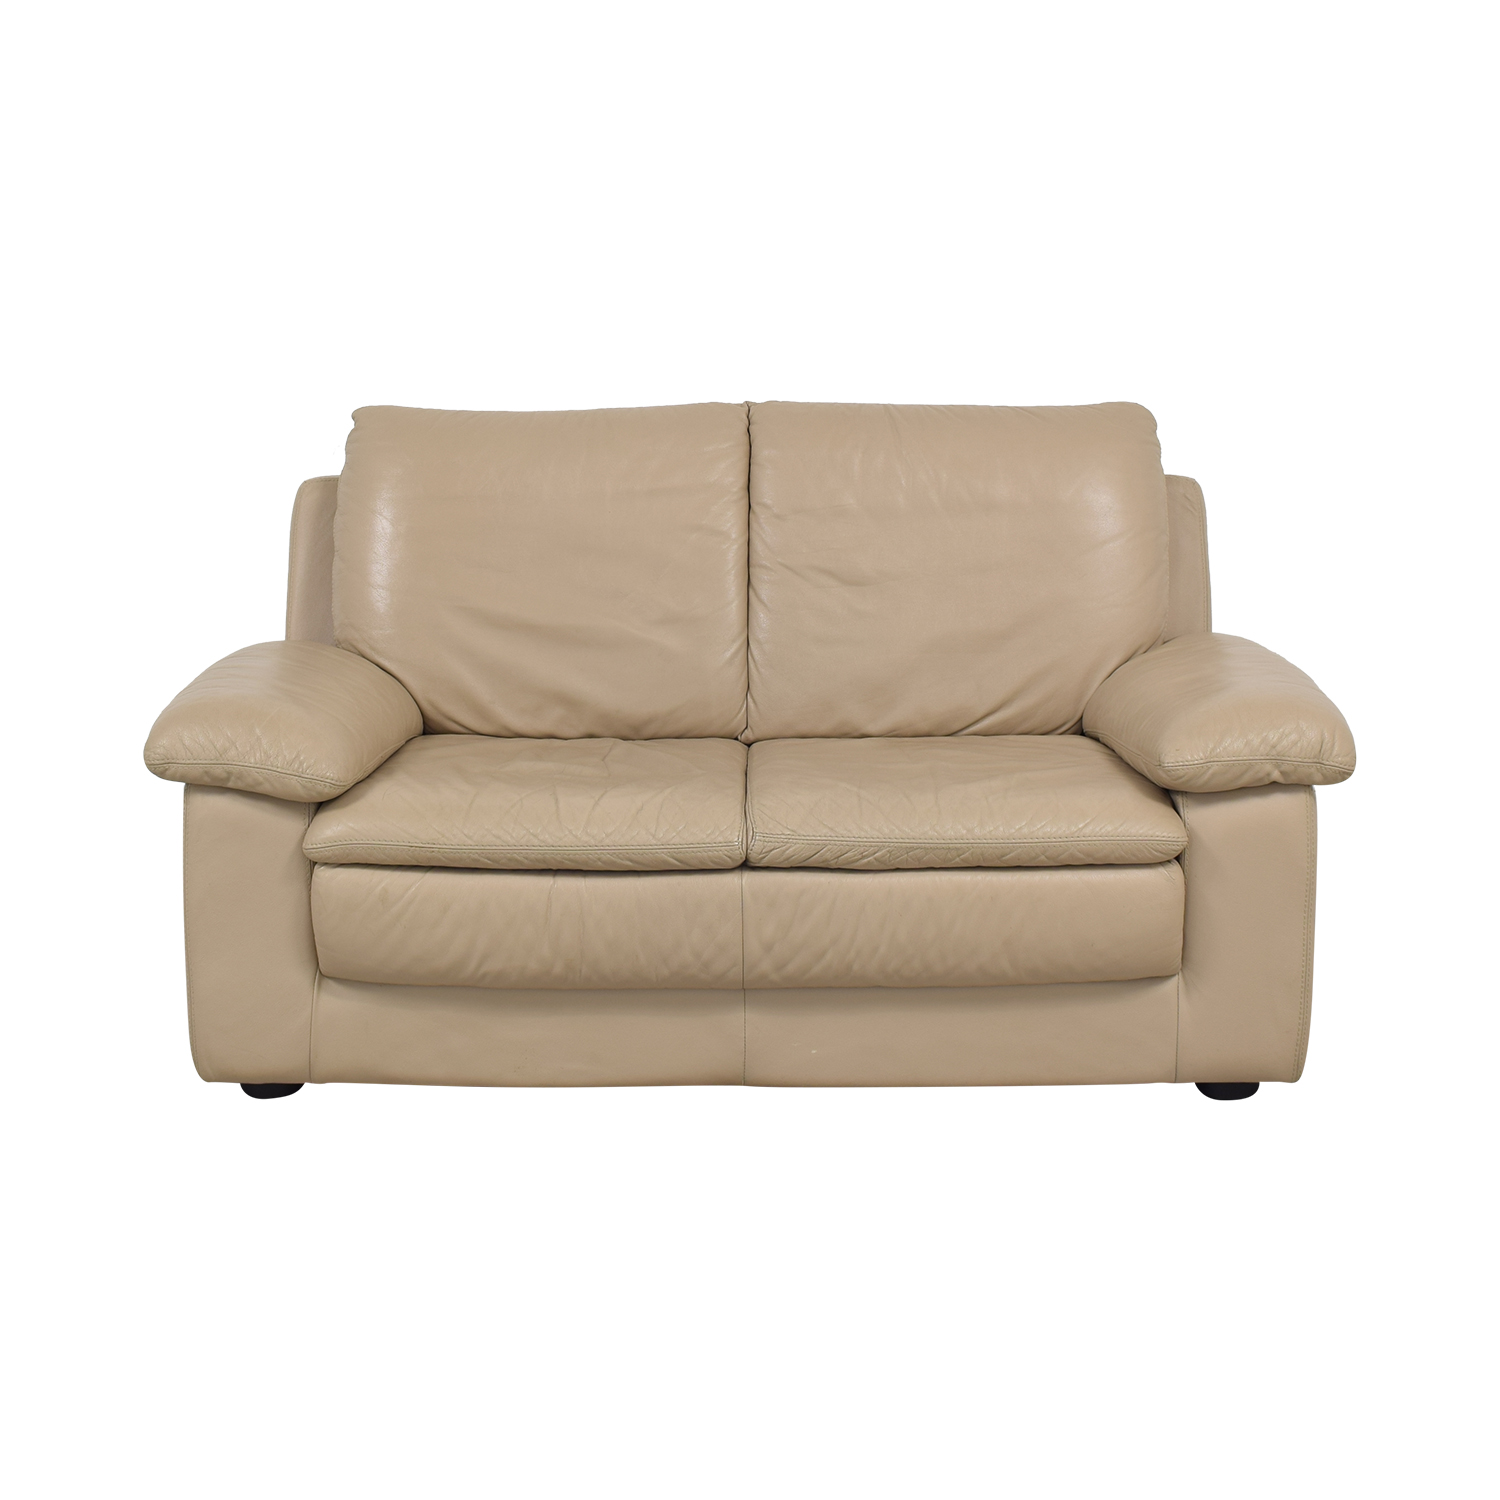 Italian Two Seat Sofa sale